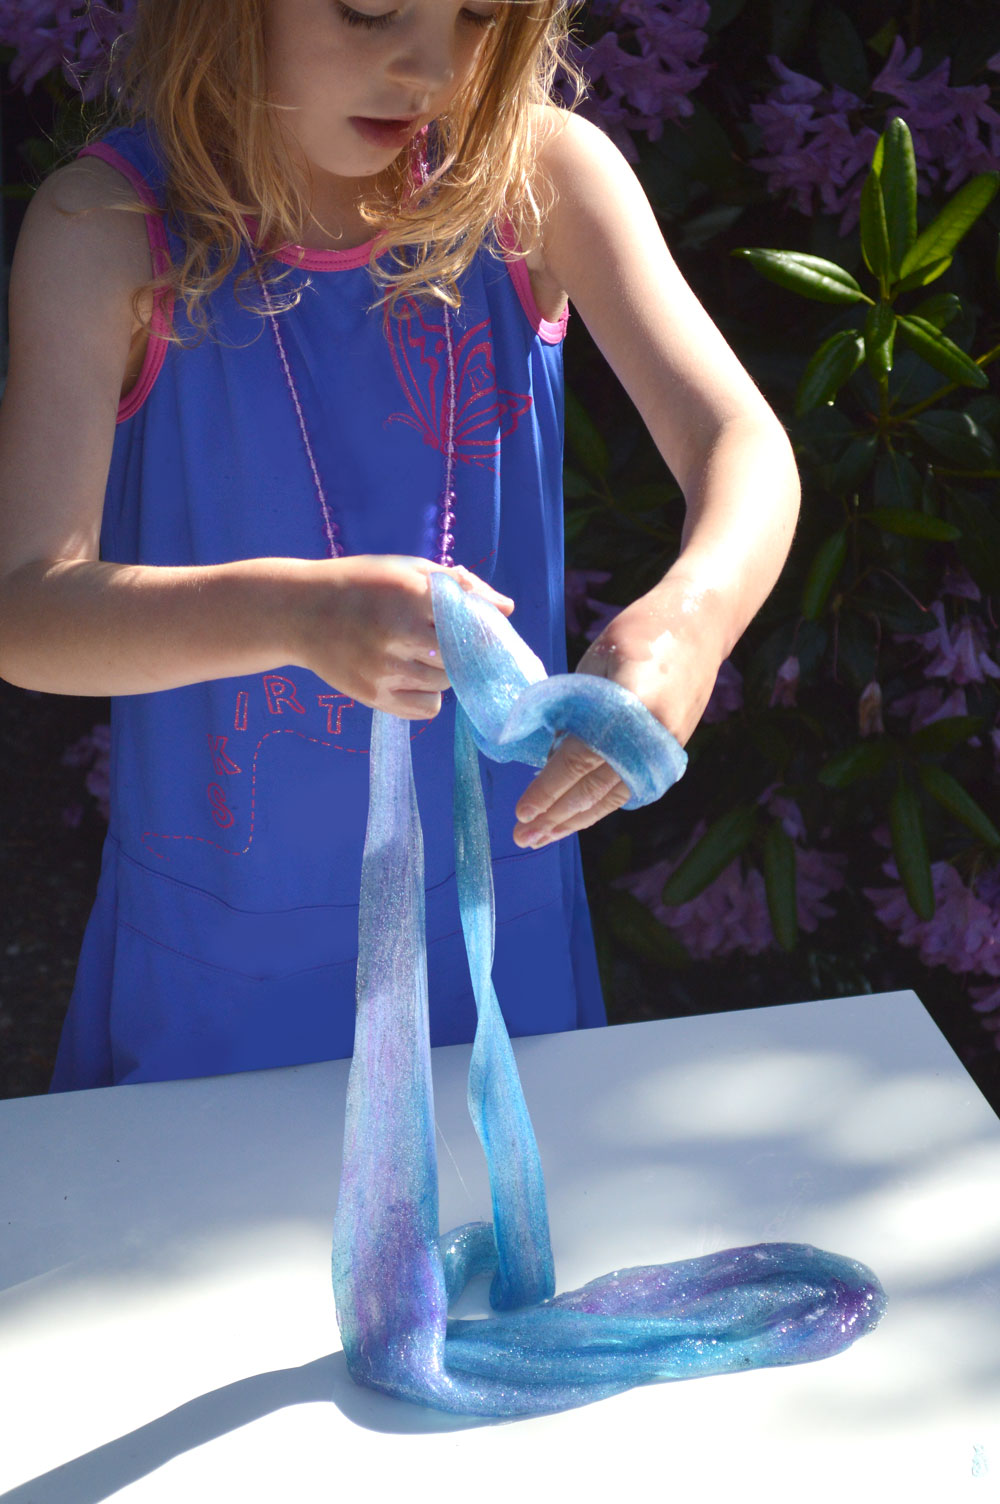 Fun DIY sensory glitter slime for kids - no borax!